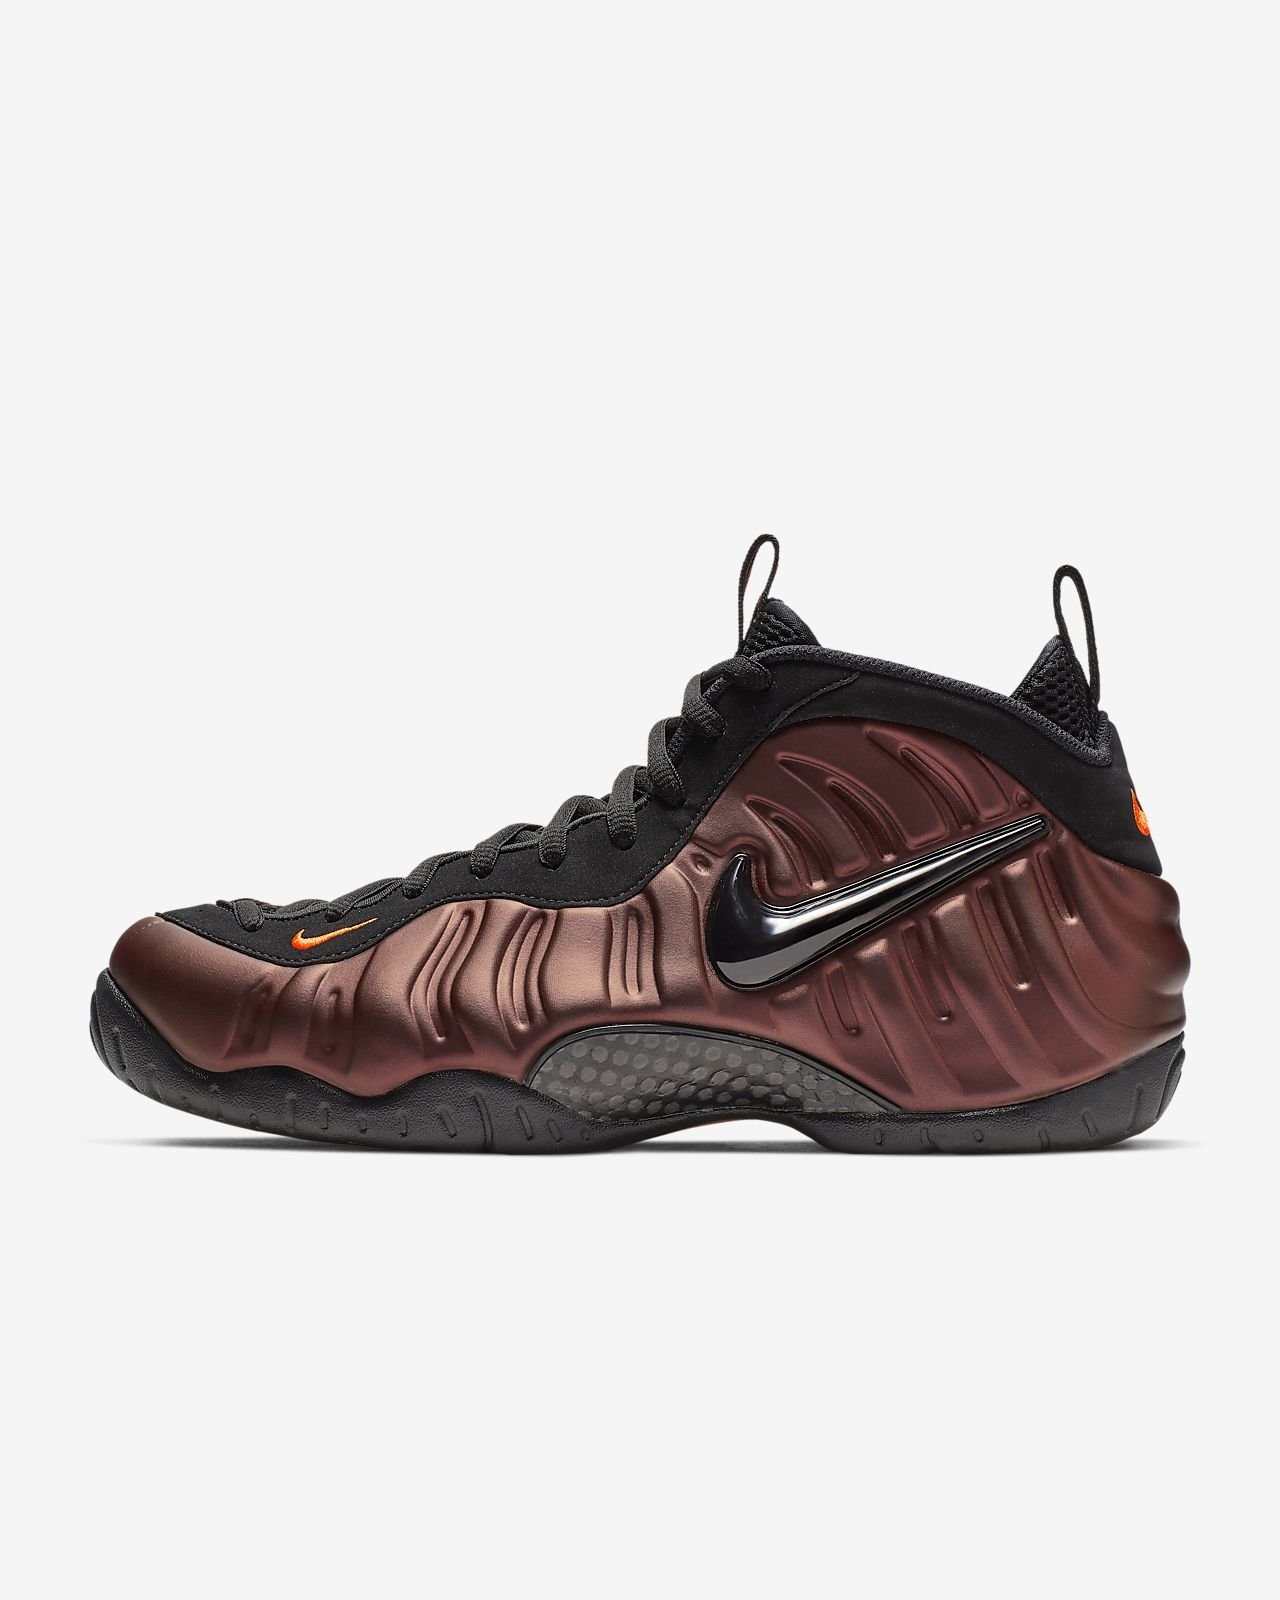 031db663964 Nike Air Foamposite Pro Men s Shoe. Nike.com SG